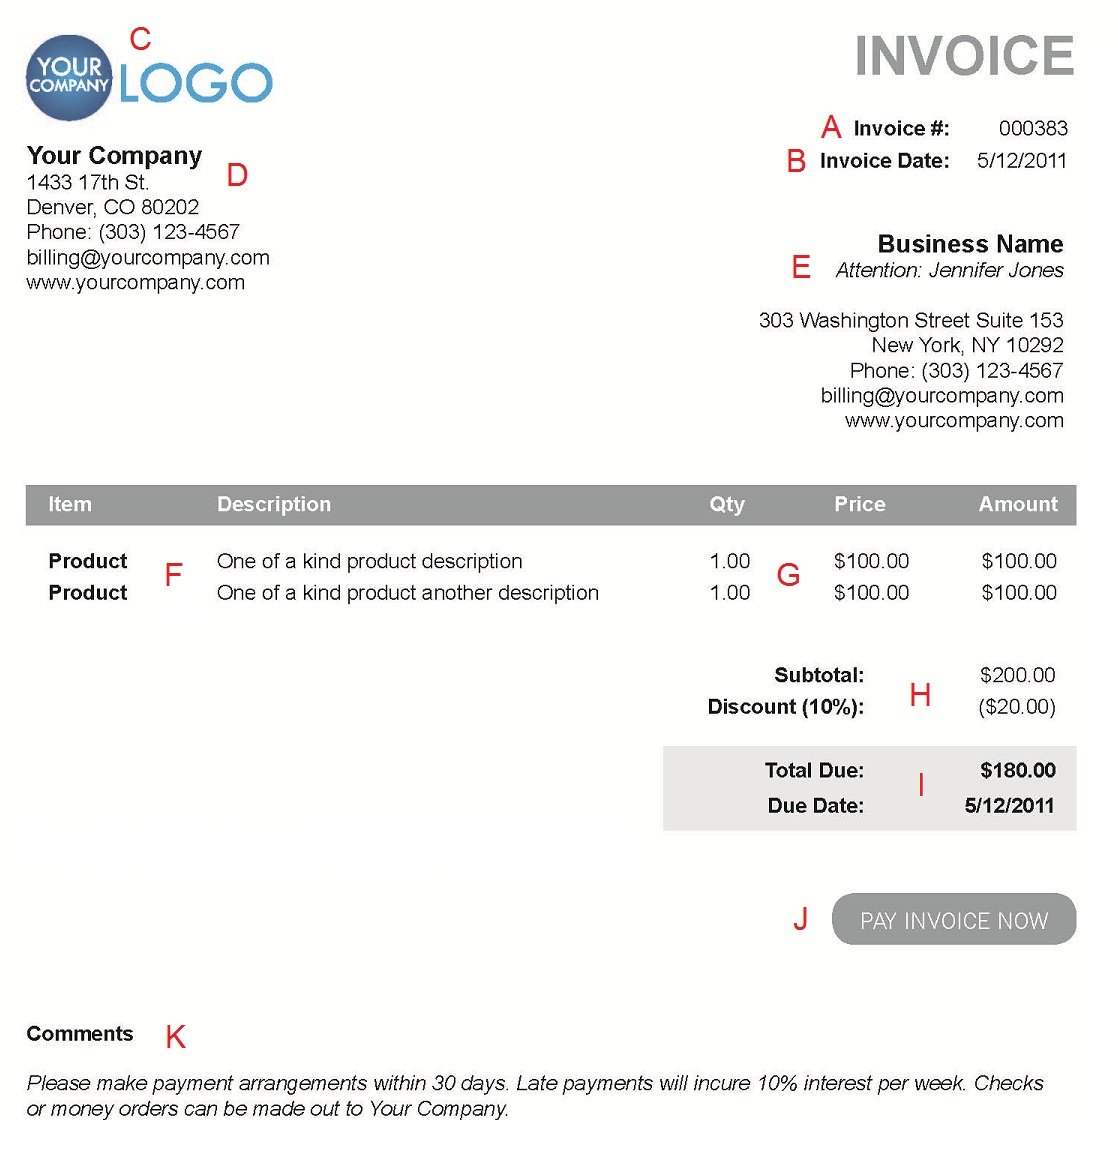 Shopdesignsus  Surprising The  Different Sections Of An Electronic Payment Invoice With Licious A  With Nice Thermal Printer Receipt Also Payment Receipt Format Pdf In Addition Microsoft Word Receipt Template Free And Cornbread Receipt As Well As Internal Control Over Cash Receipts Additionally Cash Receipt Machine From Paysimplecom With Shopdesignsus  Licious The  Different Sections Of An Electronic Payment Invoice With Nice A  And Surprising Thermal Printer Receipt Also Payment Receipt Format Pdf In Addition Microsoft Word Receipt Template Free From Paysimplecom